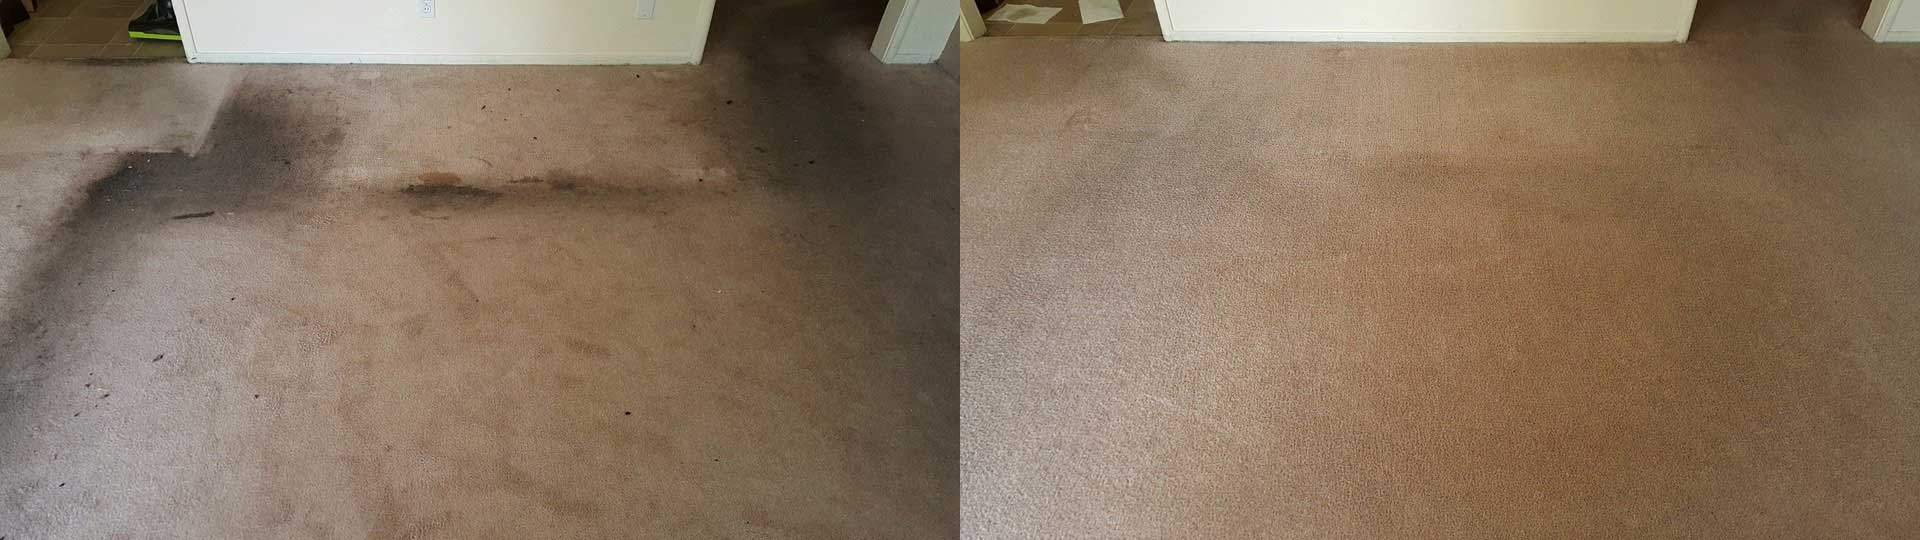 carpet cleaning North Natomas CA